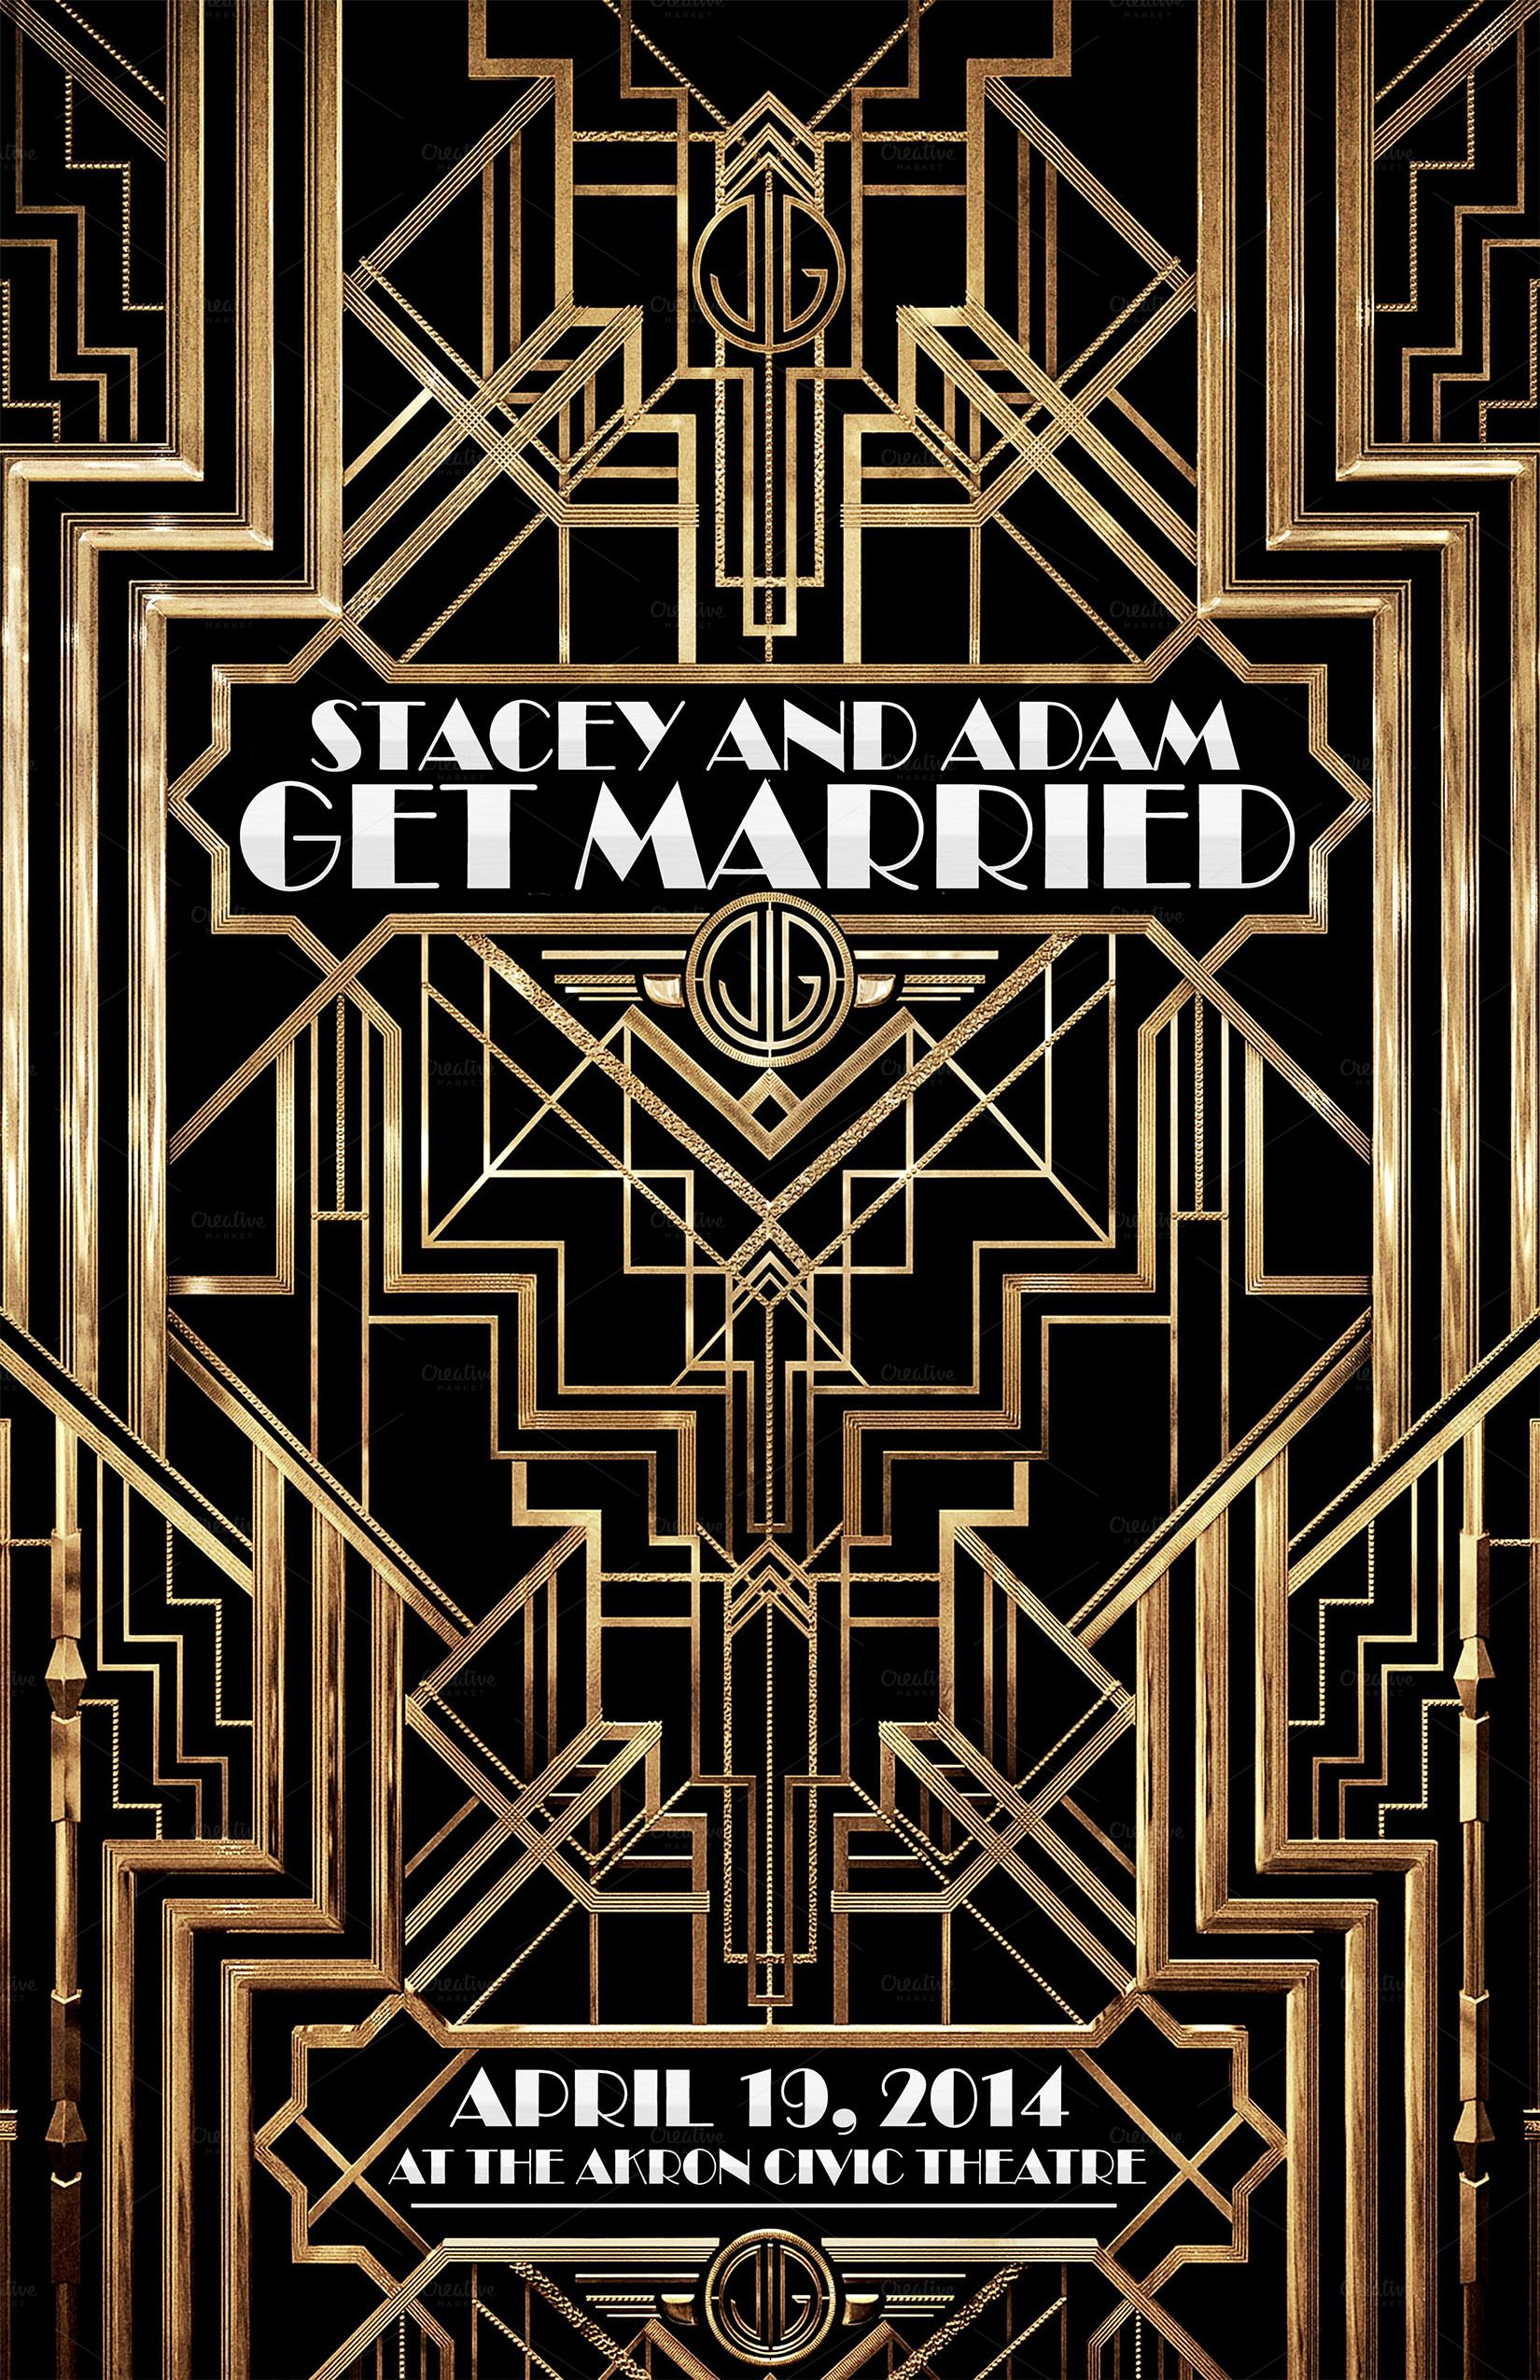 The great gatsby flyer weddings flyer only 4 design design imitating the cover of the movie the great gatsby flyer for weddings music event party festival or any other type classic fandeluxe Image collections